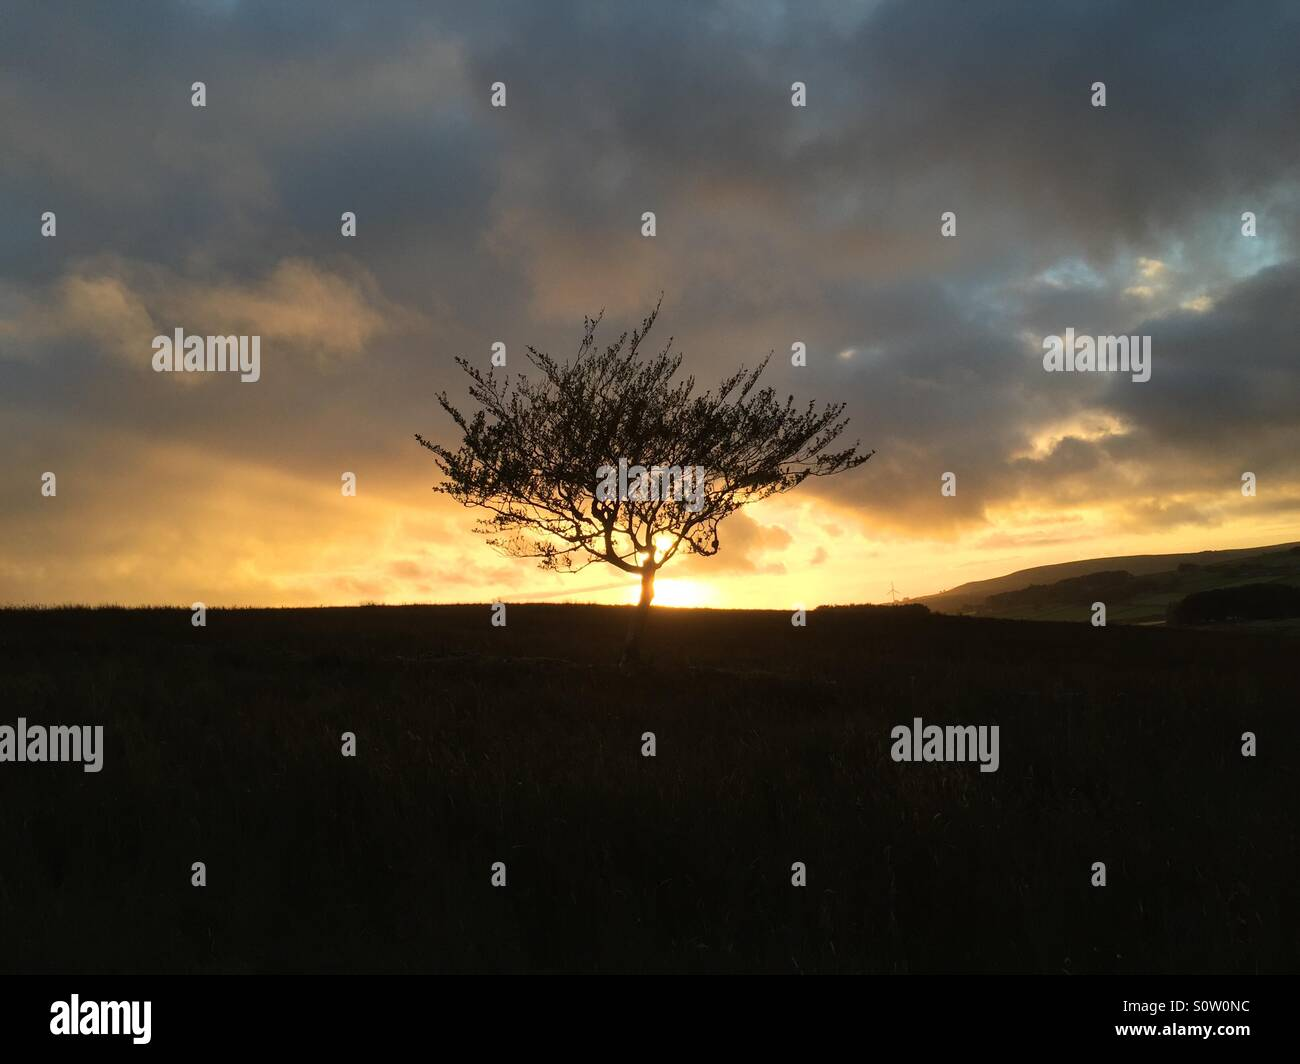 'Burning Bush' - Sunset behind a small tree near Kilwaughter in Co. Antrim, N. Ireland. - Stock Image